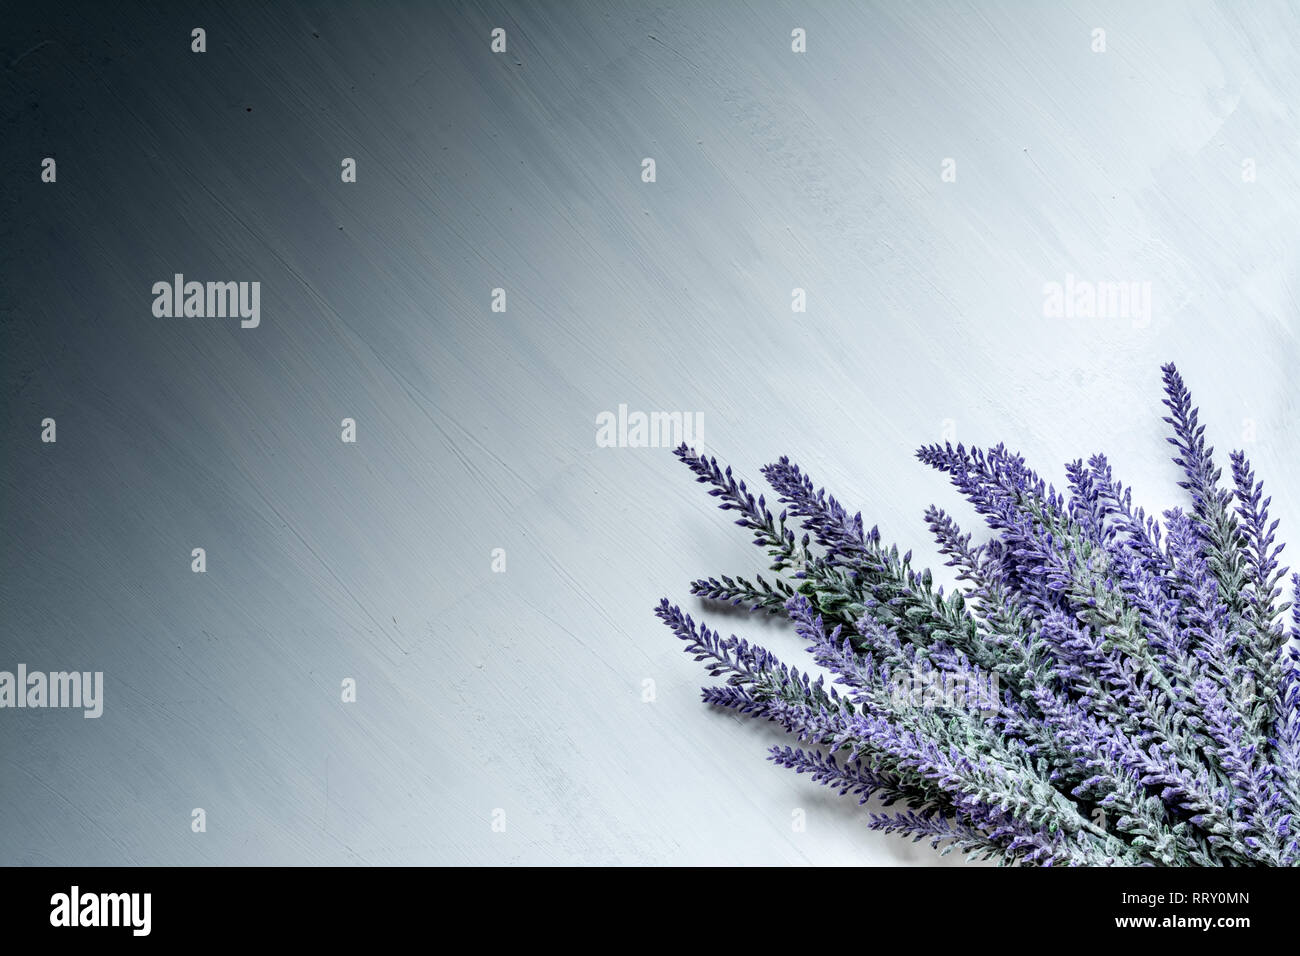 Branches of lavender closeup on a white vintage background with divorces of paint and gradient, with space for text. - Stock Image